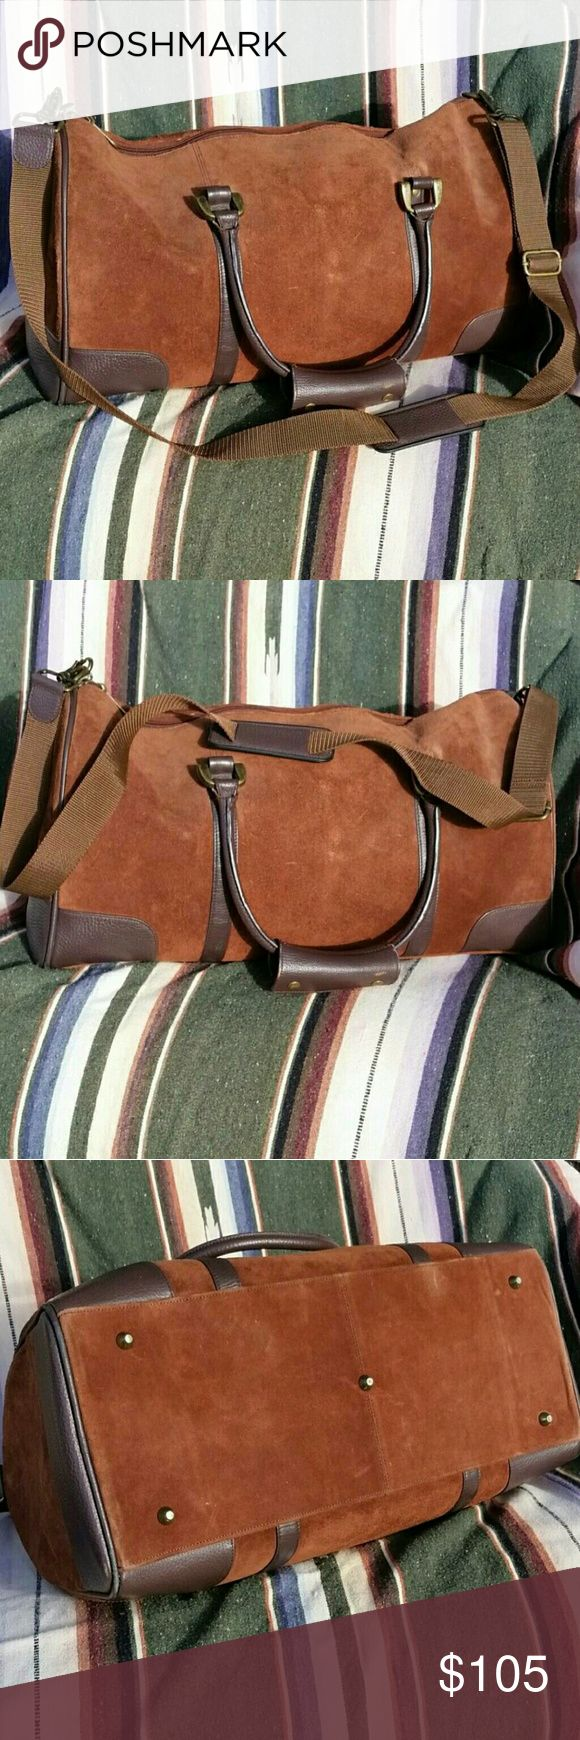 """Suede Leather Duffle Gym Bag Travel Bag Vintage Duffle Bag Brown Suede Leather Travel Bag Man Bag Sports Bag Overnight Leather High Desert Style Urban Mens Street Bag. Basic, easy stuff bag.  Padded interior with a nylon lining.  Clean, with no stains, holes or tears.    Measures 18"""" × 10"""" × 9"""" Good overall condition. Vintage Bags Duffel Bags"""